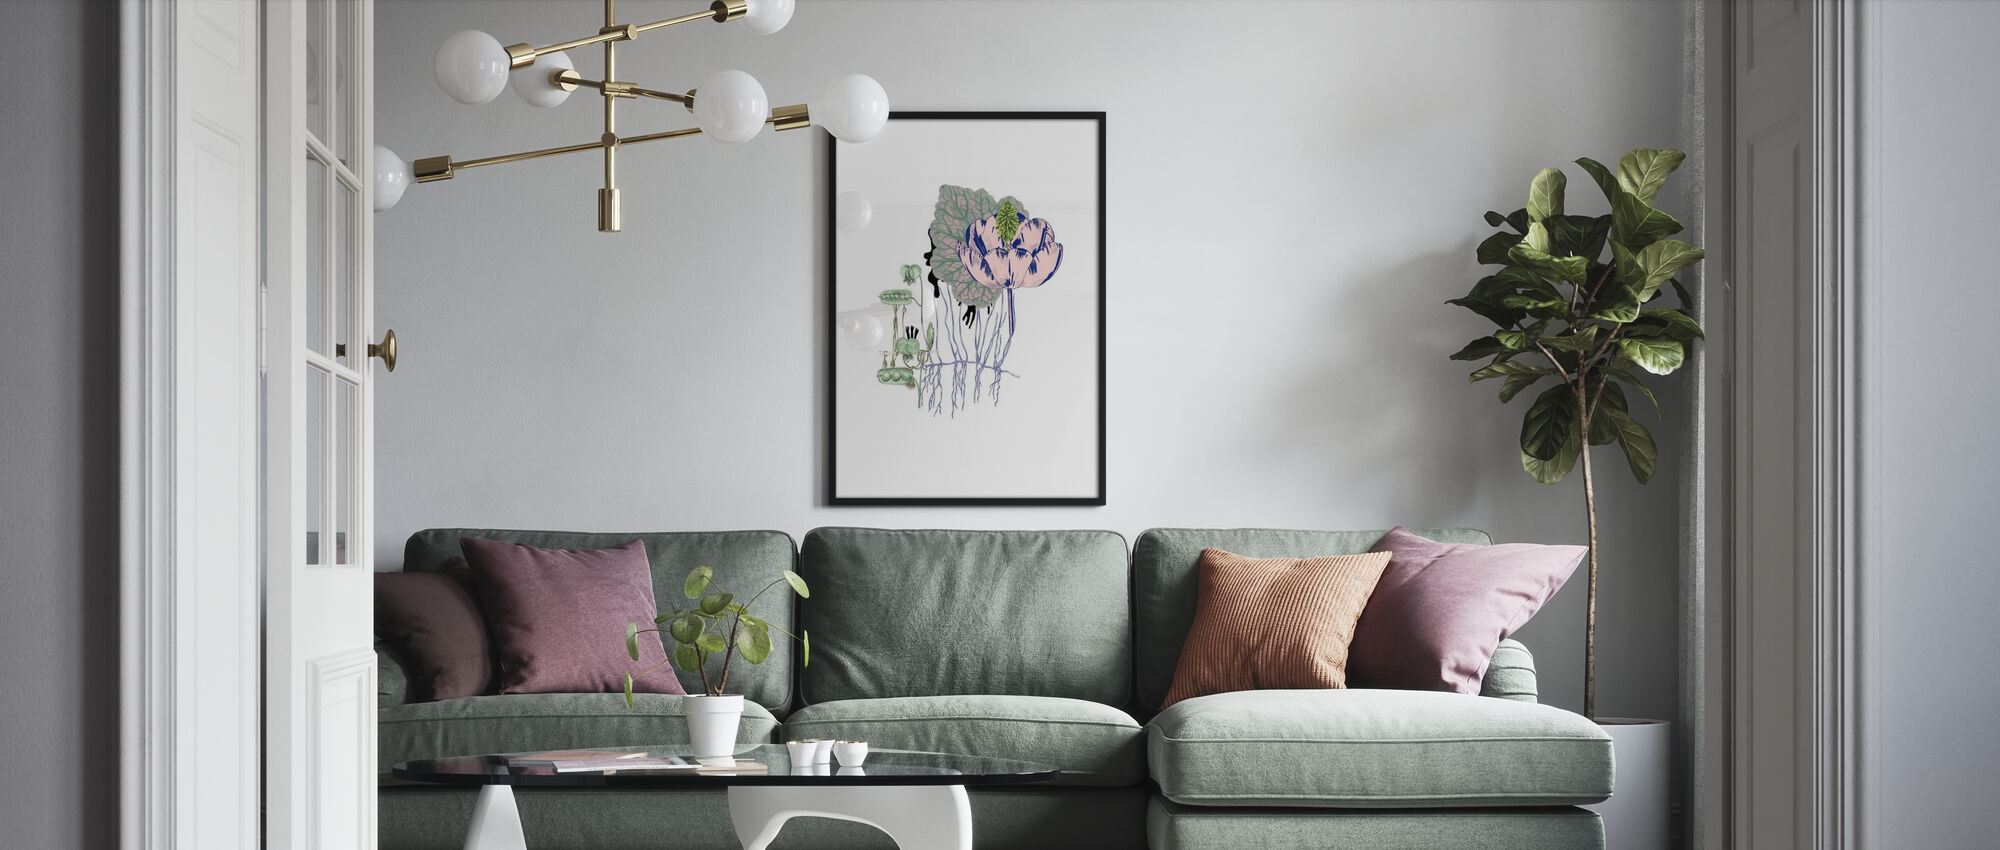 Sweet Pea Flora - Poster - Living Room